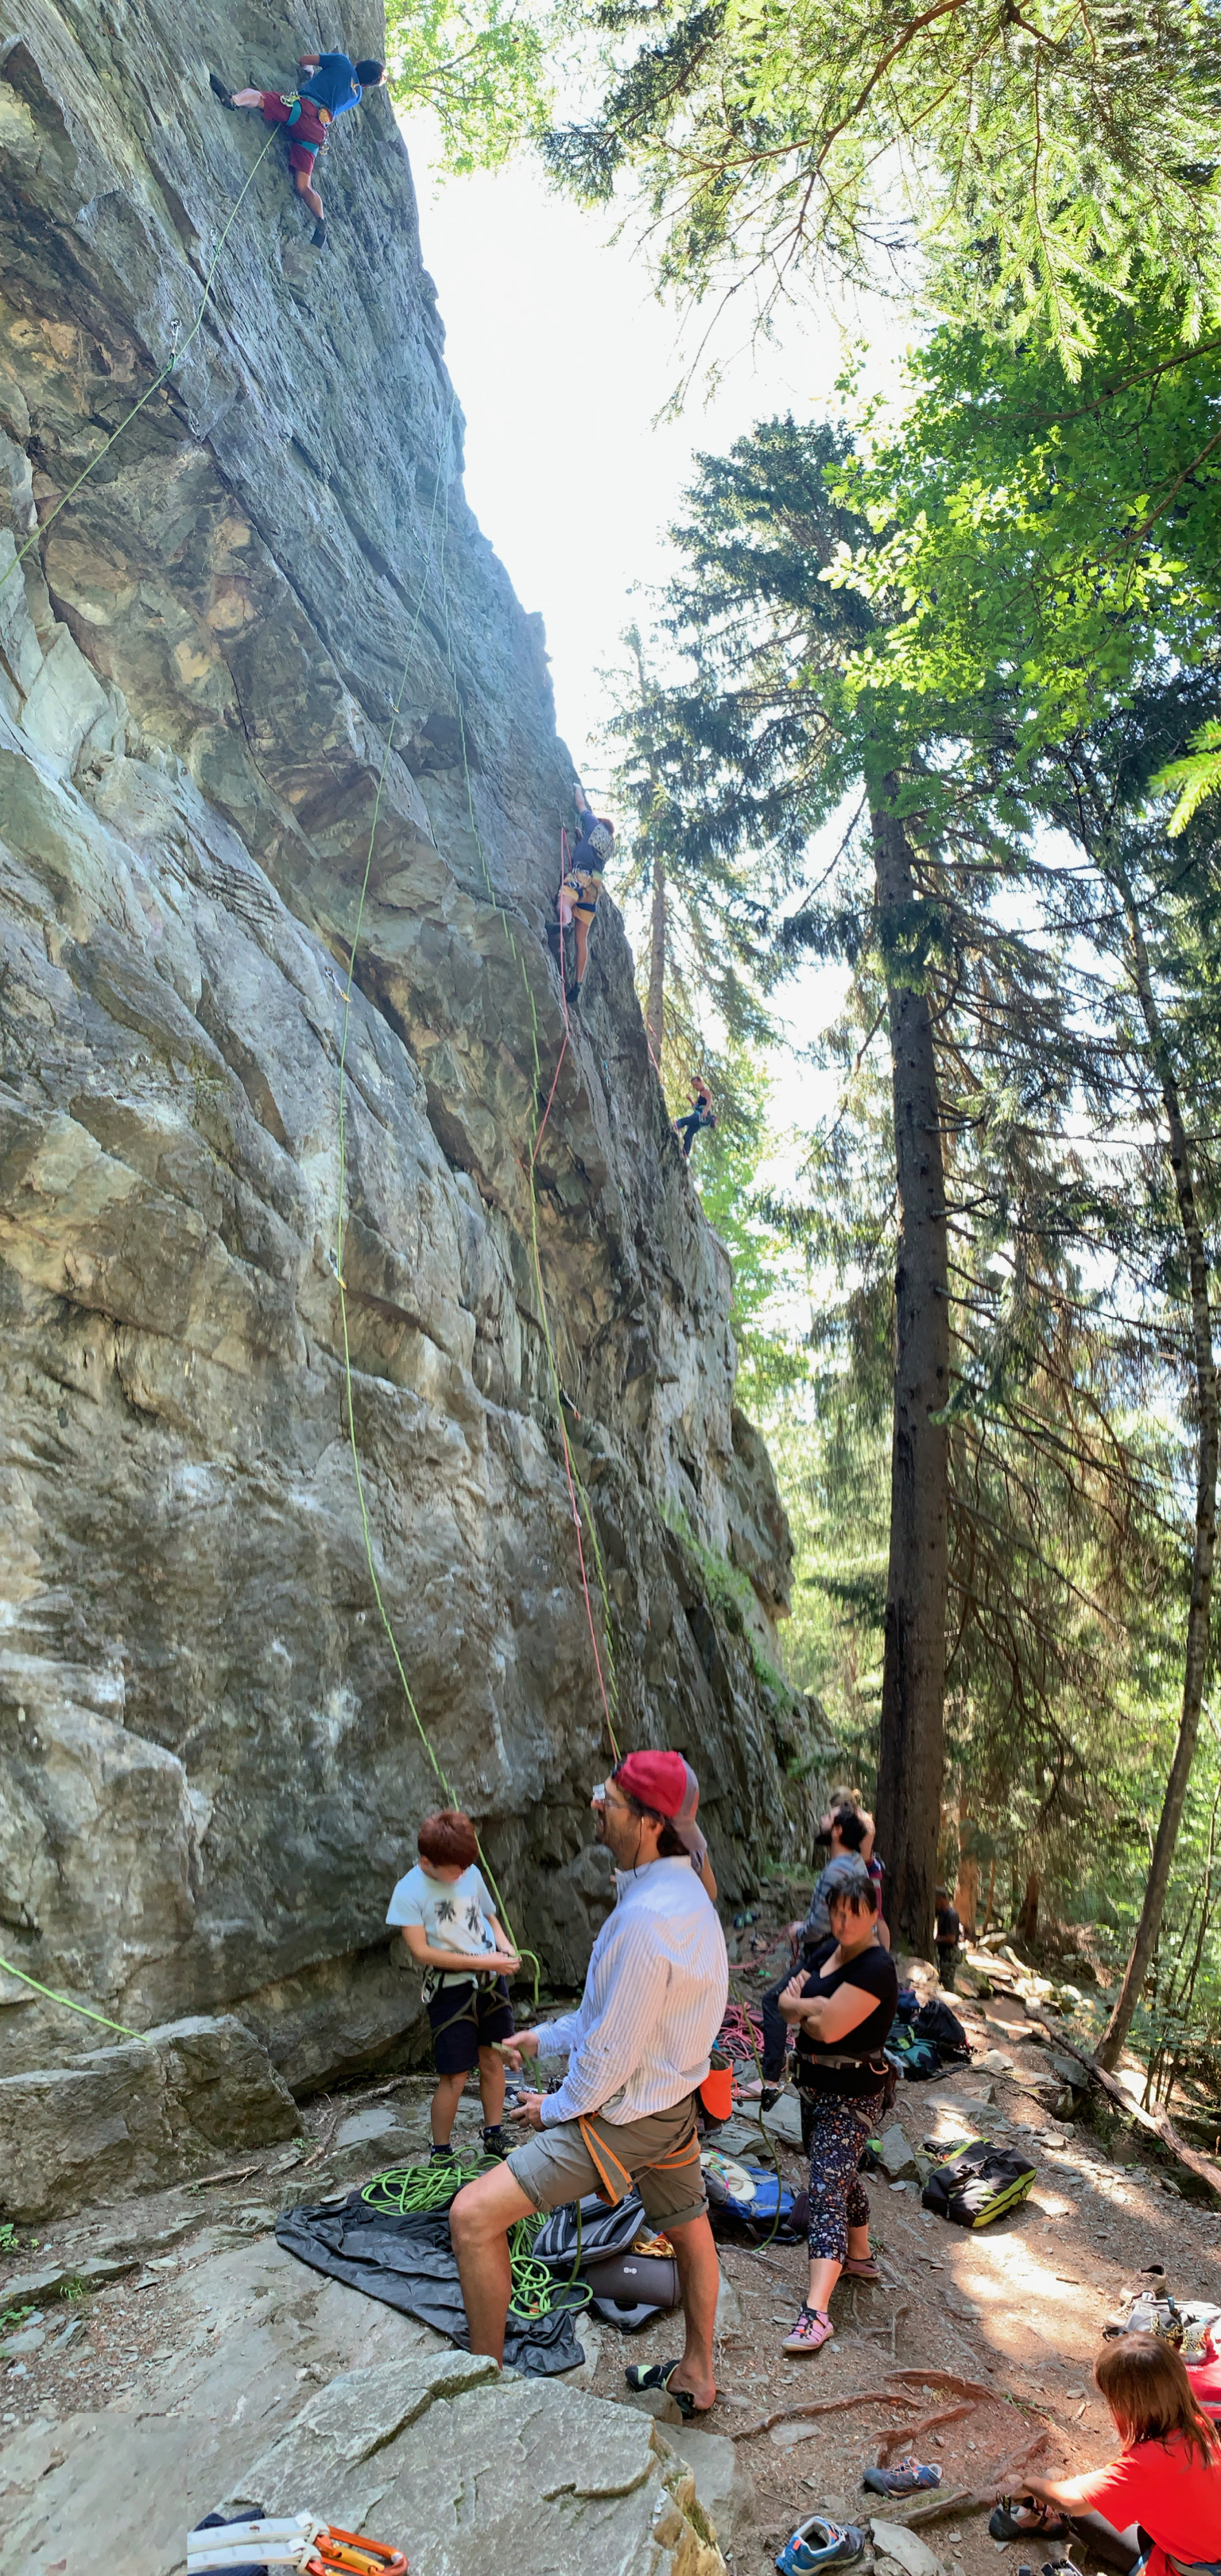 Re-acquainting ourselves with roc climbing at a busy crag above Chamonix